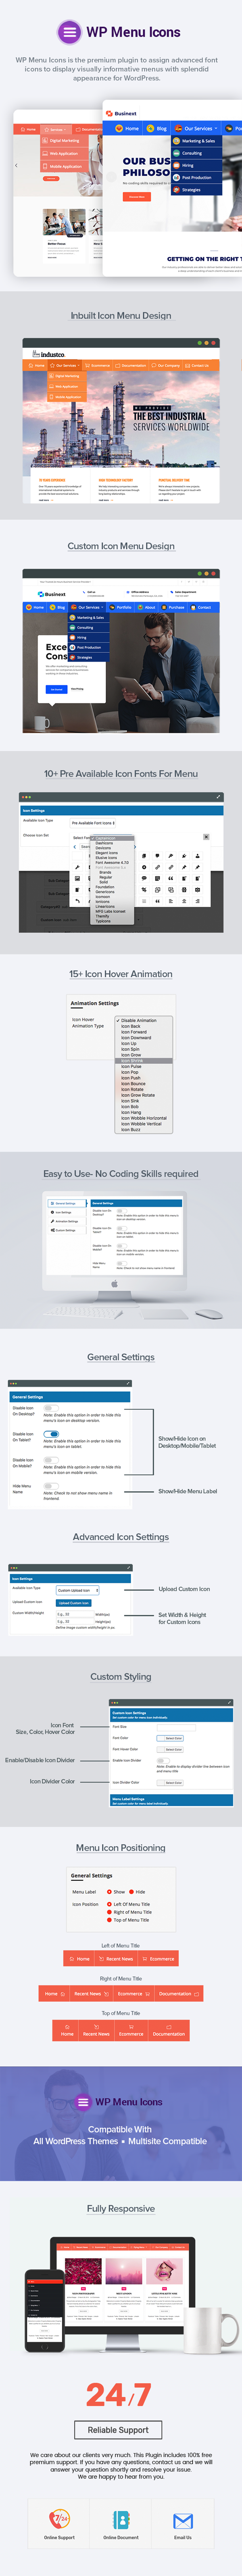 WP Menu Icons - Effectively Add & Customize Icons For WordPress Menus - 1